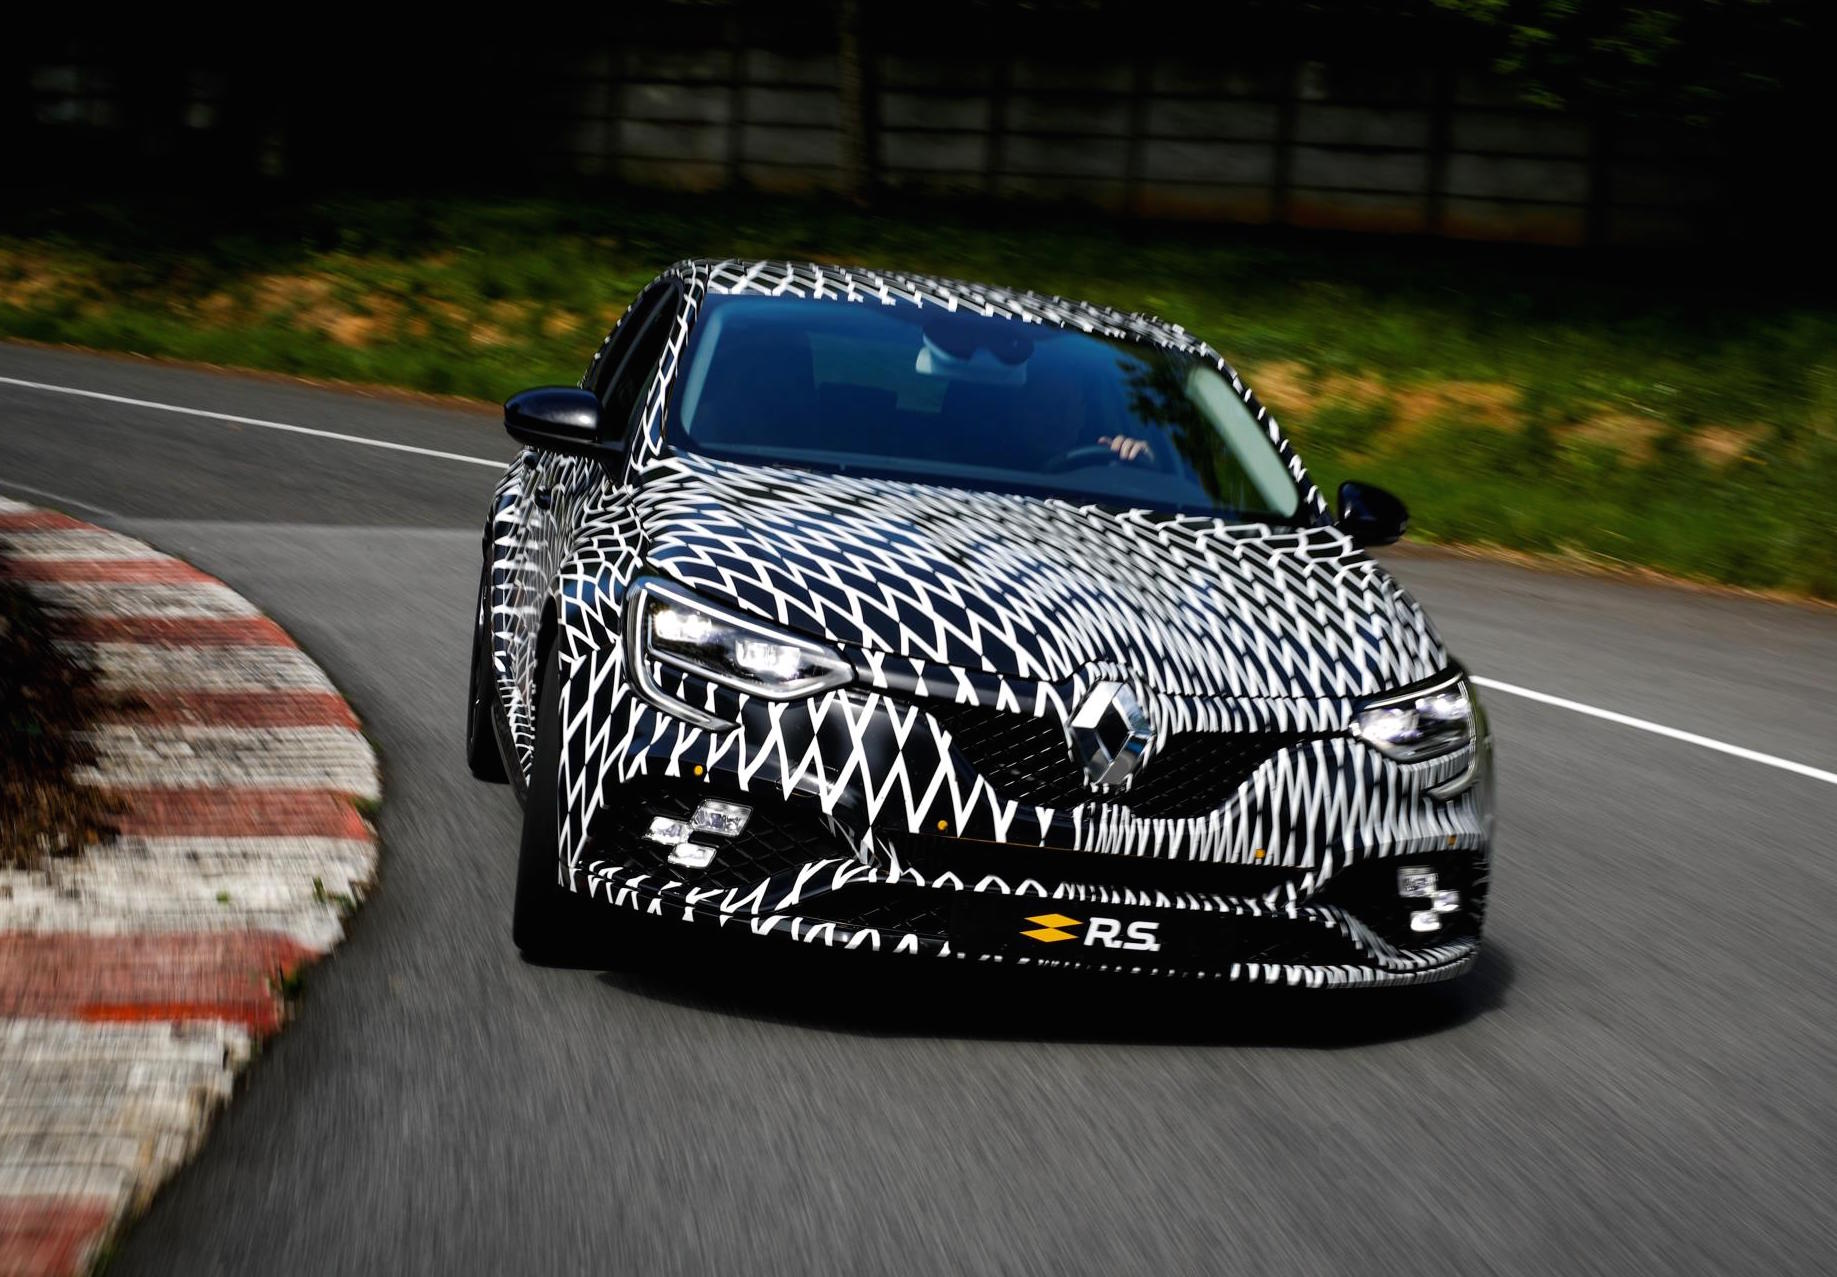 Renault to unveil all-new Megane RS at Monaco Grand Prix